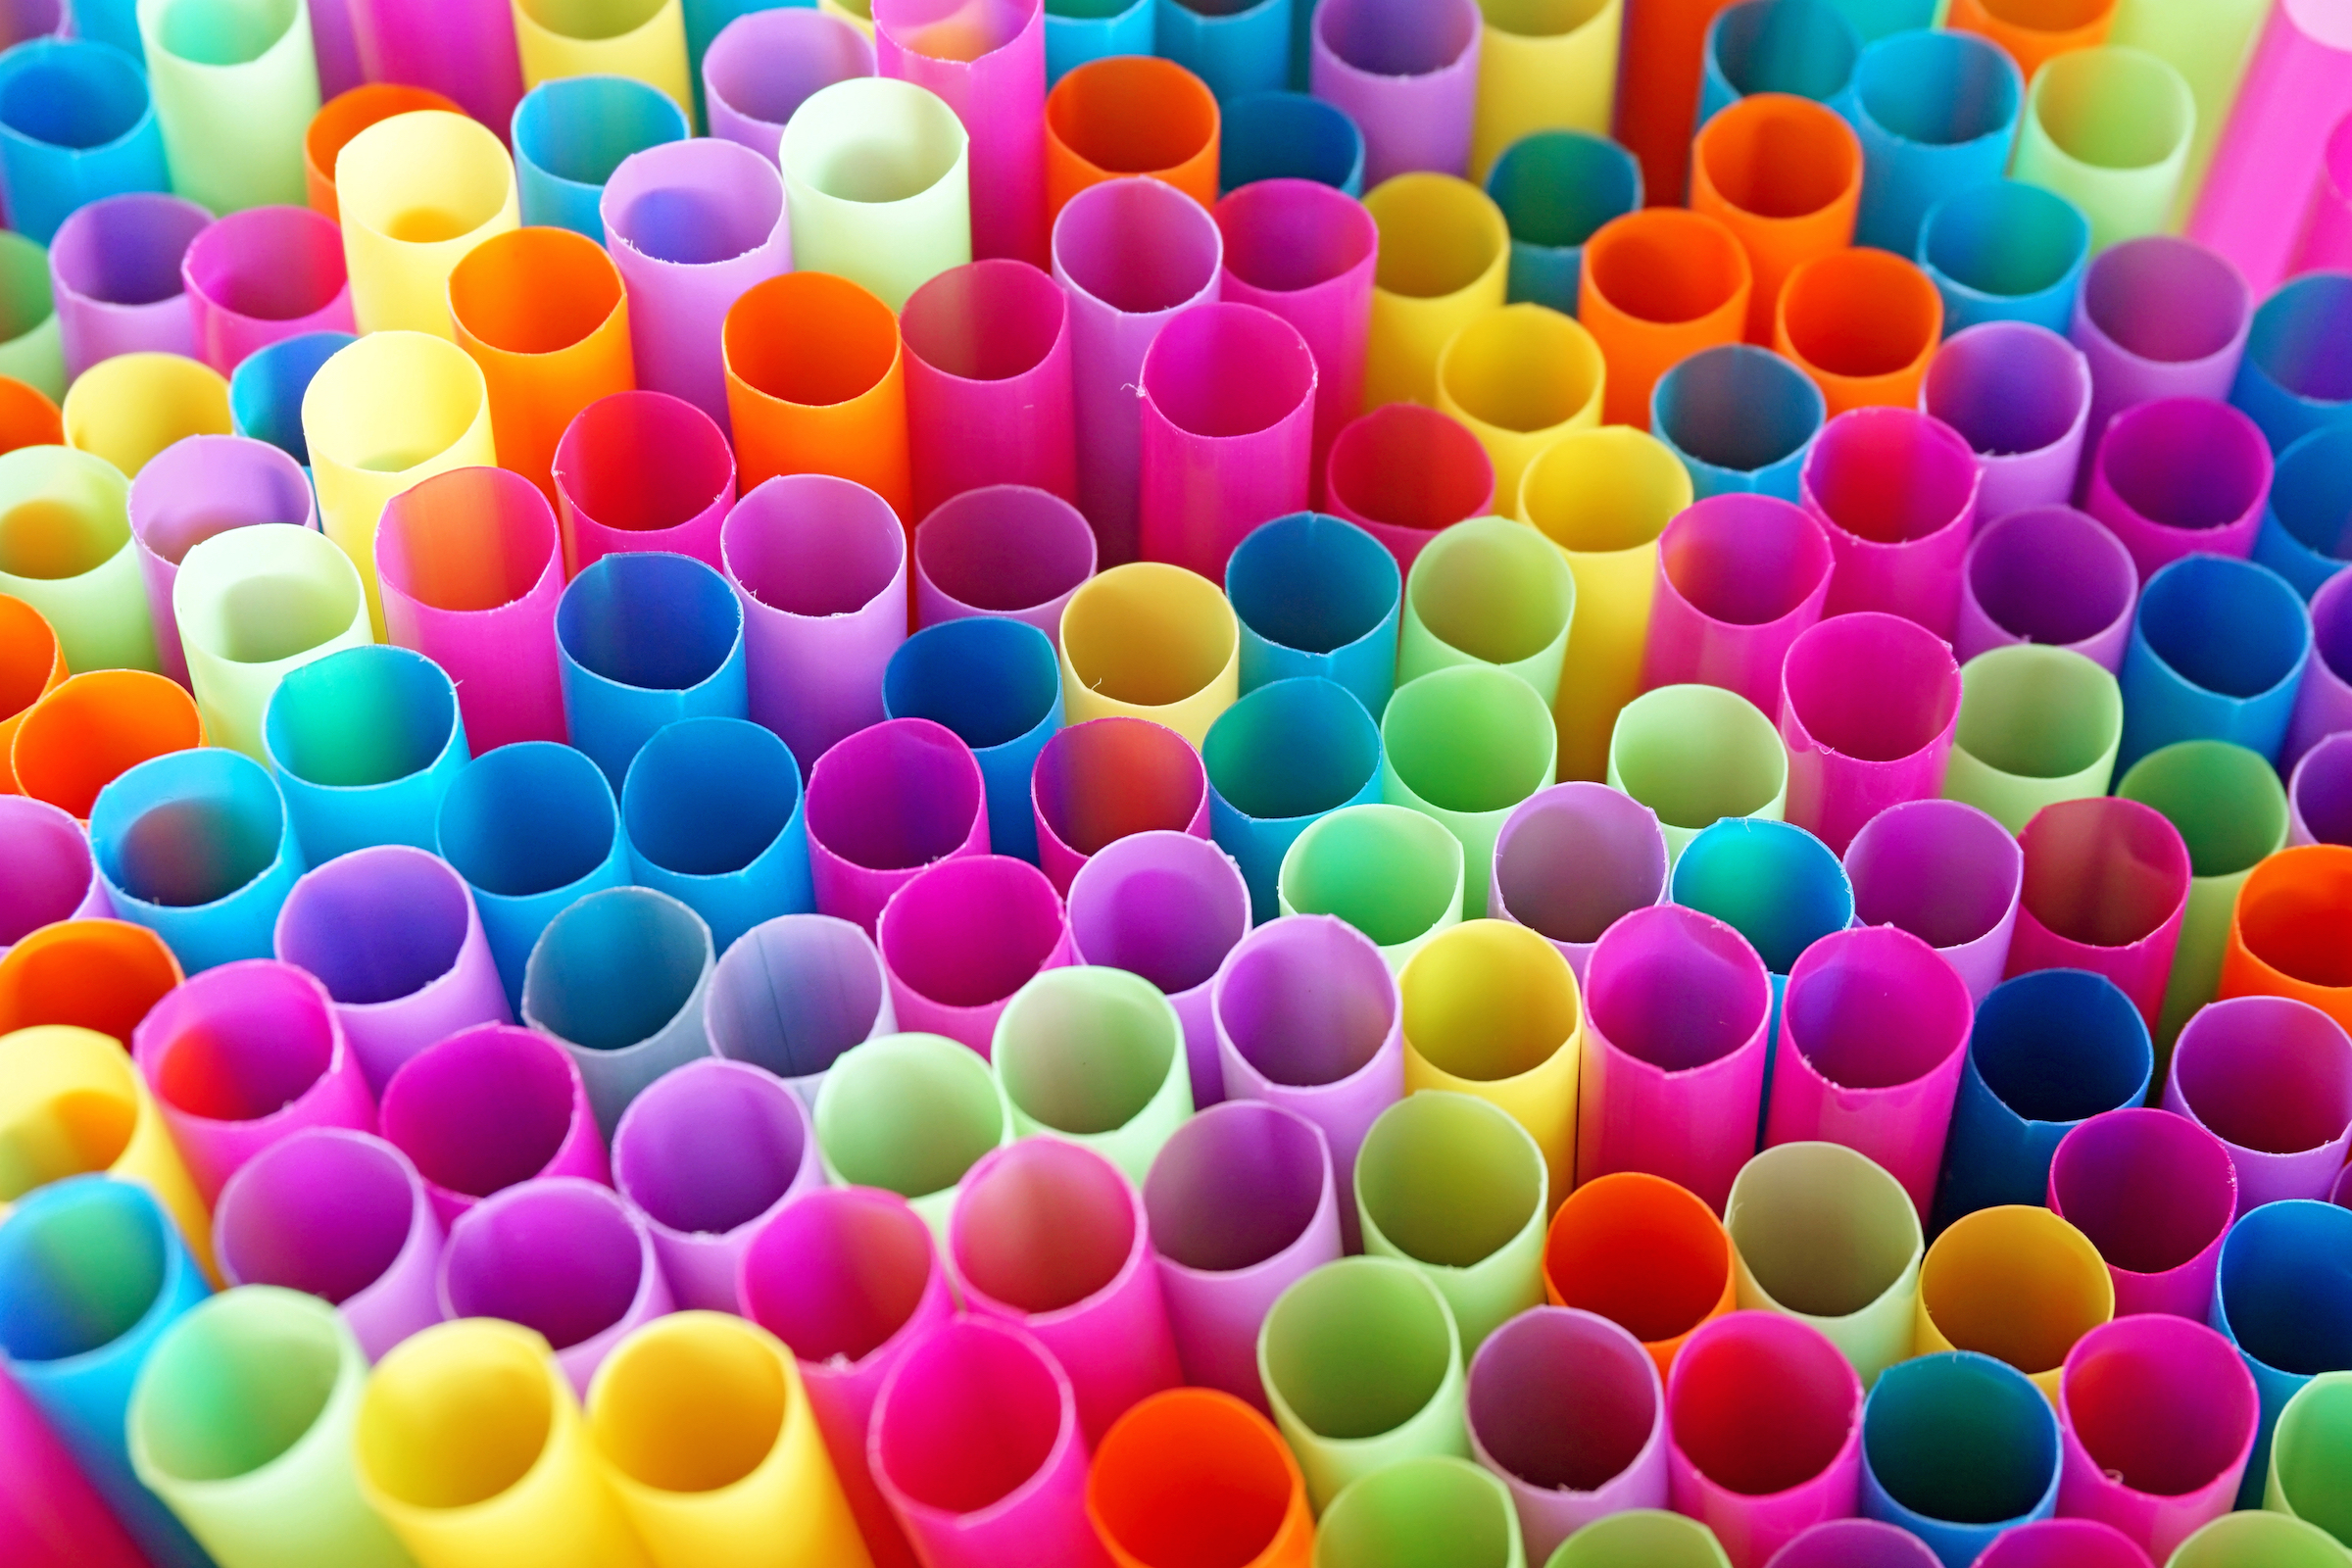 A bundle of colorful, paralell drinking straws.